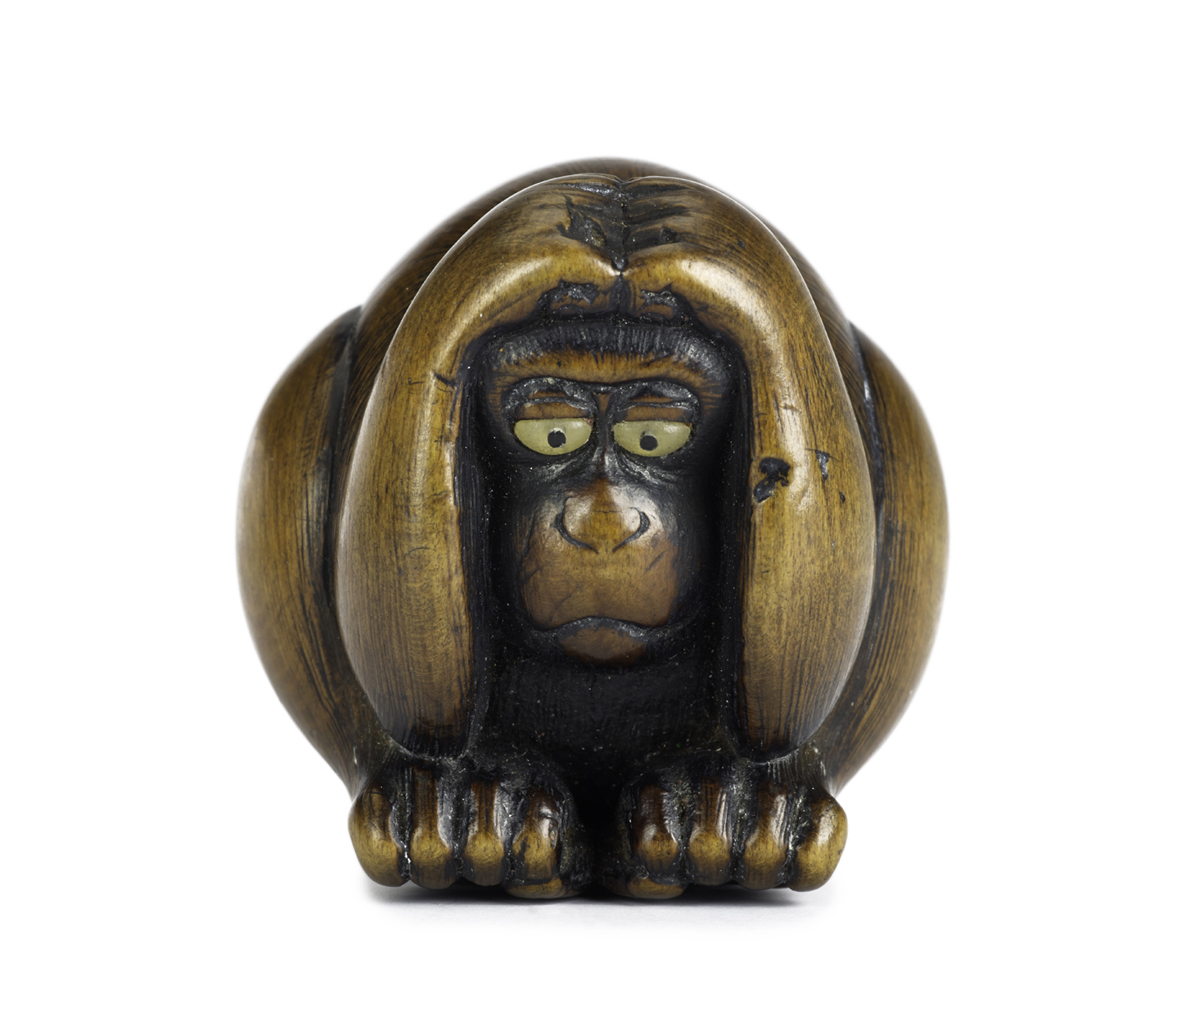 A.1946.740 - Netsuke of carved wood, a monkey crouching with hands on head, signed: Japan, by Nansui.